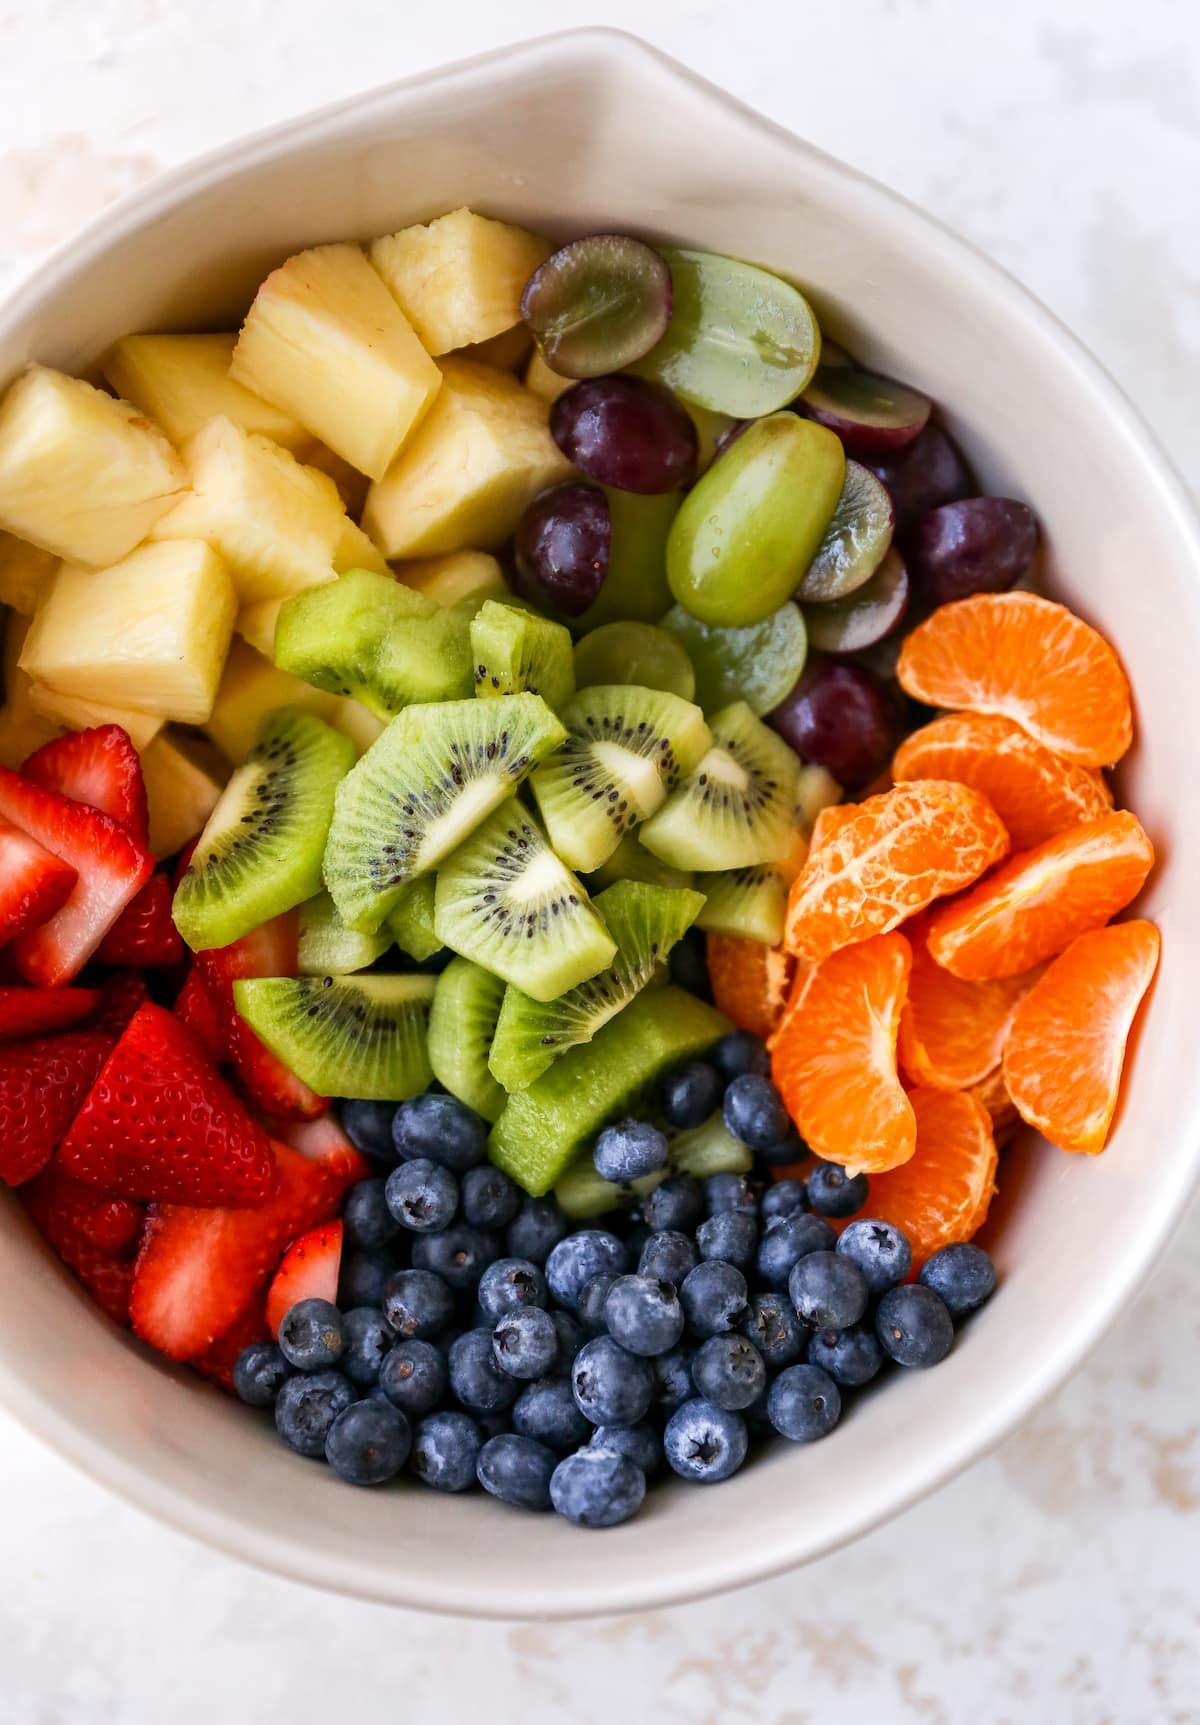 Mixing bowl with pineapple chunks, grapes, clementine segments, kiwi slices, blueberries and strawberries.